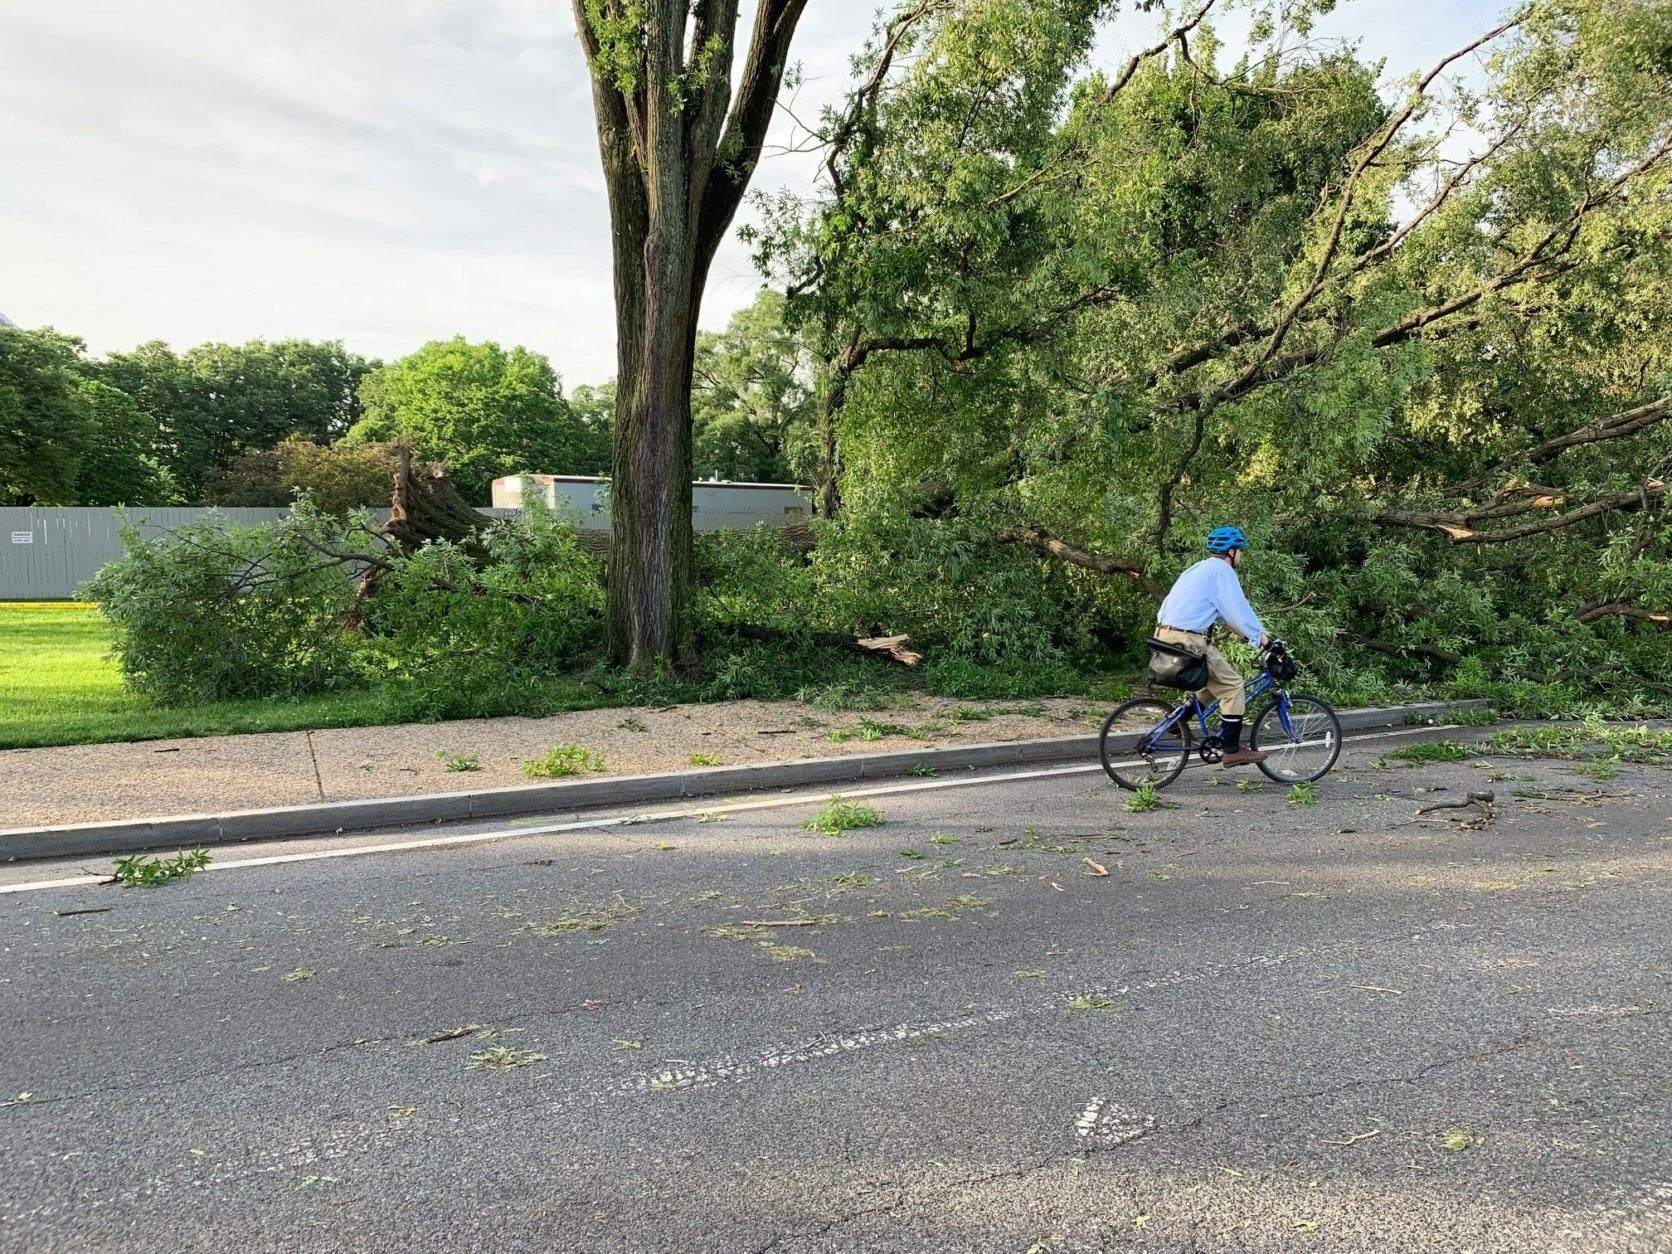 Downed trees block the sidewalk near the Jefferson Memorial in D.C. after a storm on Thursday, May 23, 2019. (WTOP/Dan Friedell)